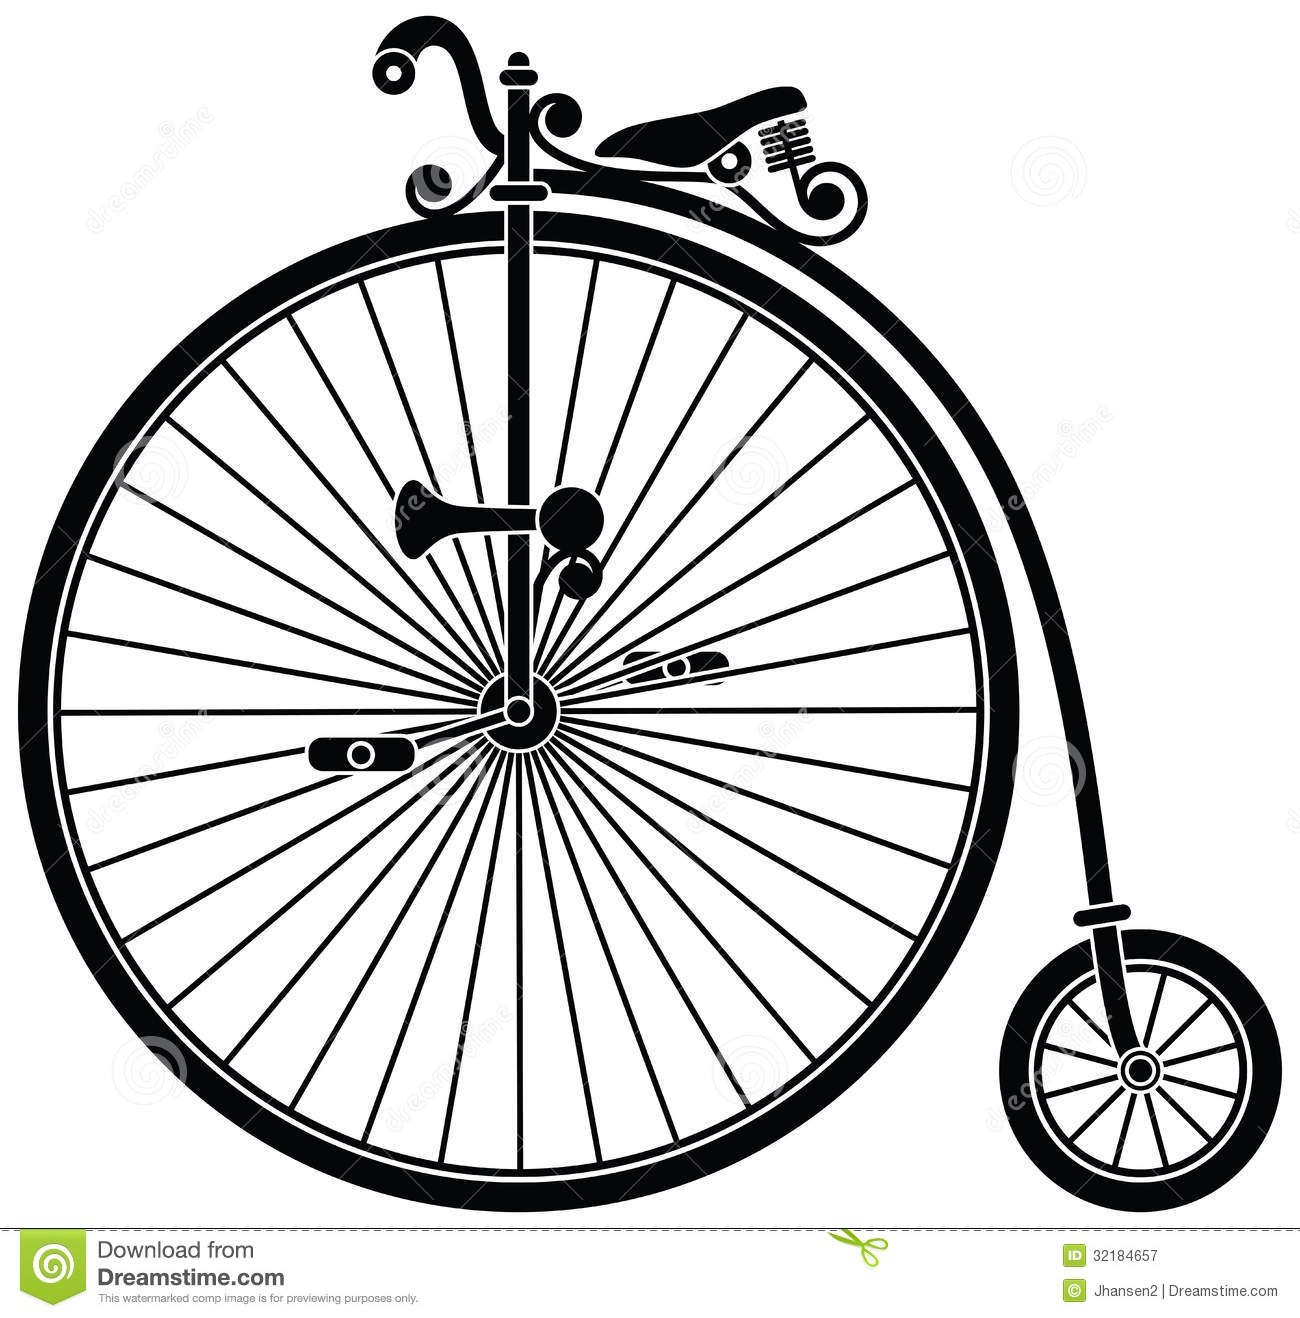 Wheel clipart cycle wheel. Bicycle free download best